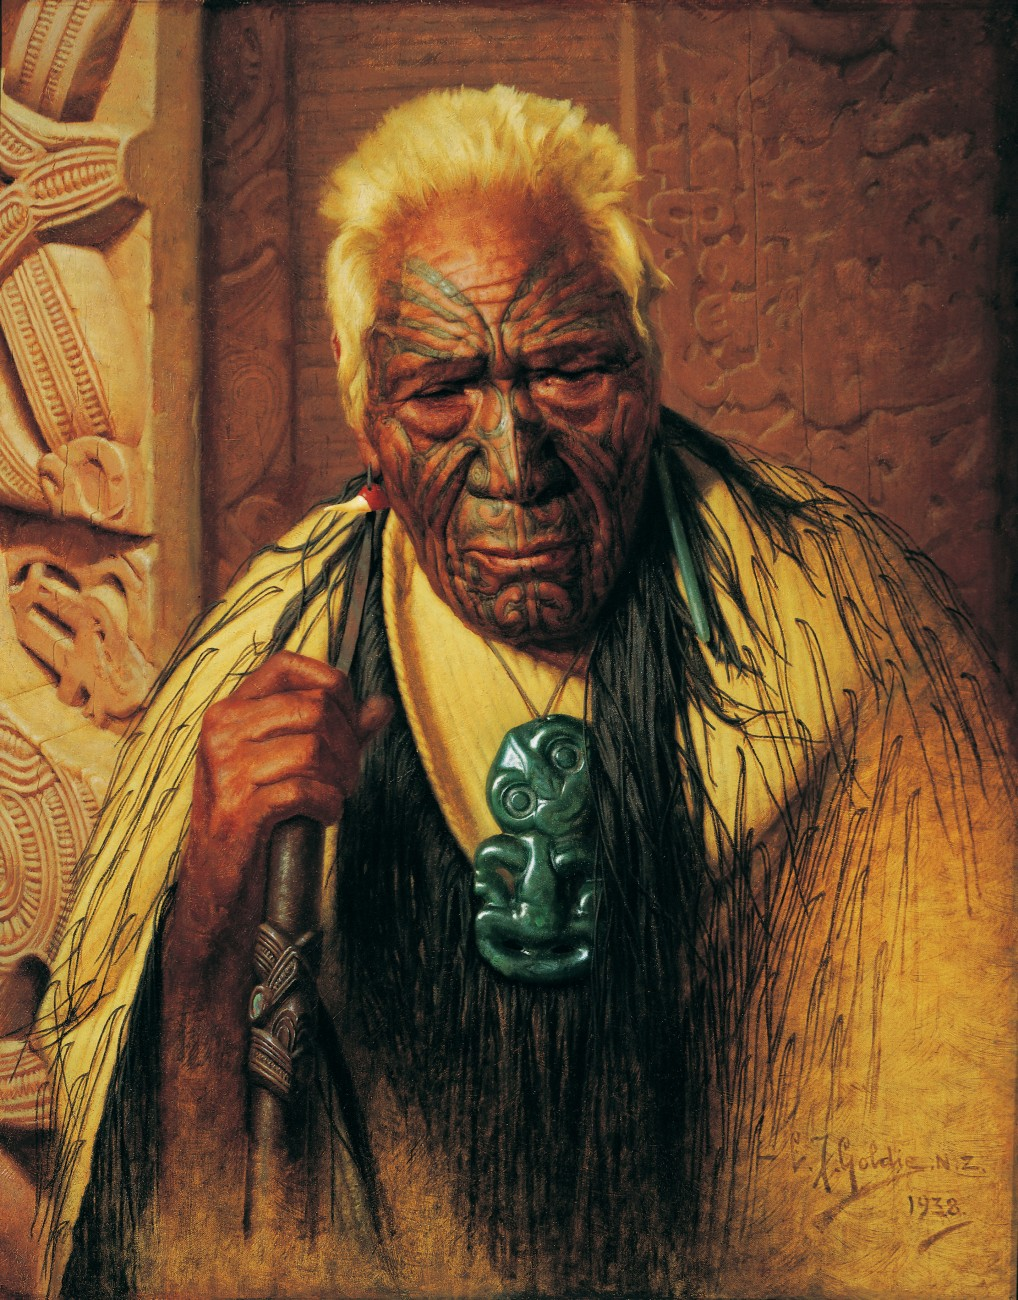 For his later paintings, including this 1938 version of Thoughts of a Tohunga, Goldie worked from photographs, the old generation of rangatira having died. As always, he includes the trappings of rank and infuses his subject with a melancholy air. By portraying Maori thus, was Goldie simply tapping a sentimental vein in his audience? If so, is his work really art? The debate will continue, but for most New Zealanders the face of Maori past is the face that returns their gaze from a Goldie portrait. Distorted, perhaps, but unforgettable.